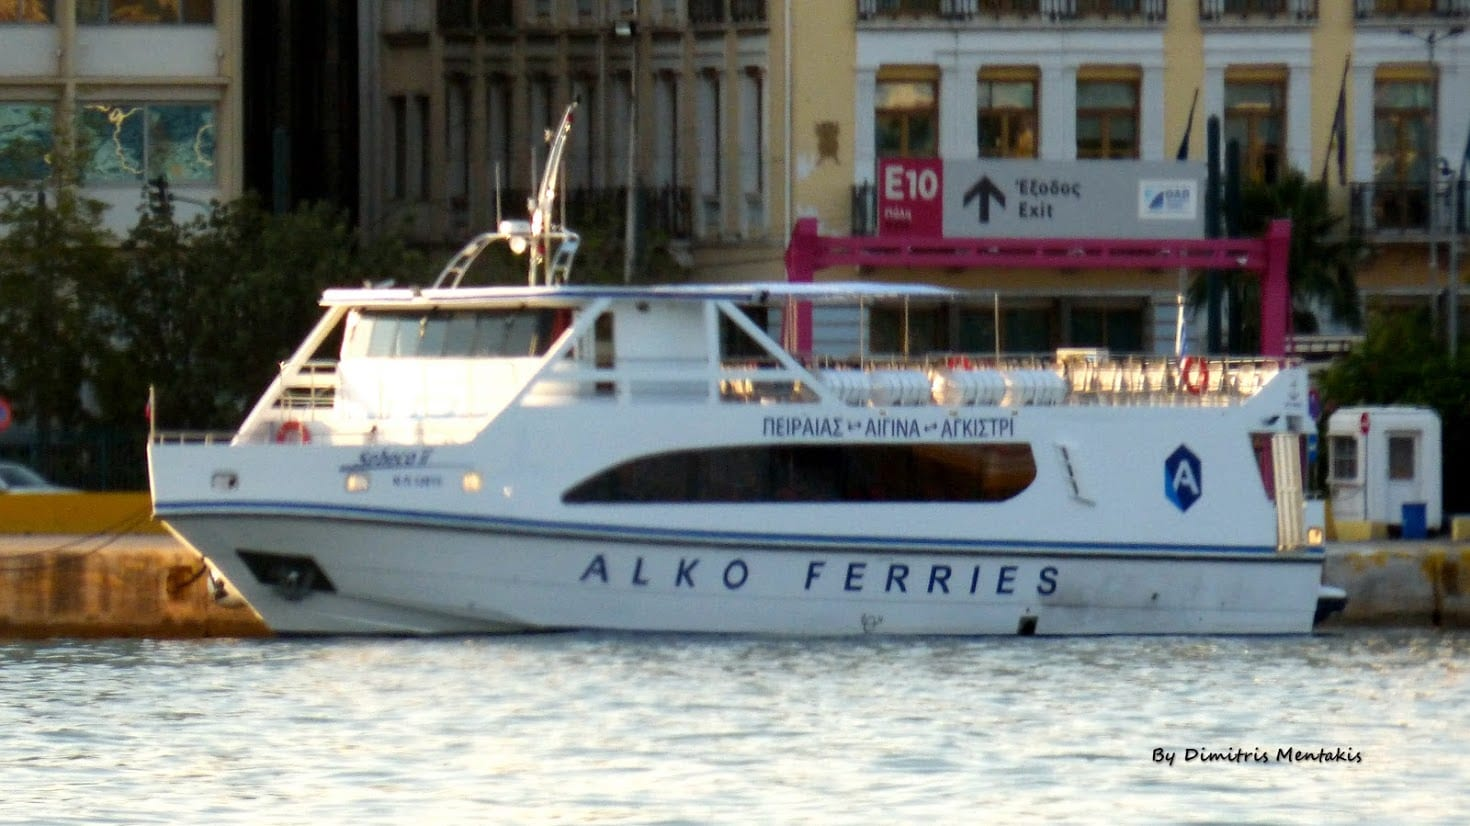 The tiny Alko Ferries vessel